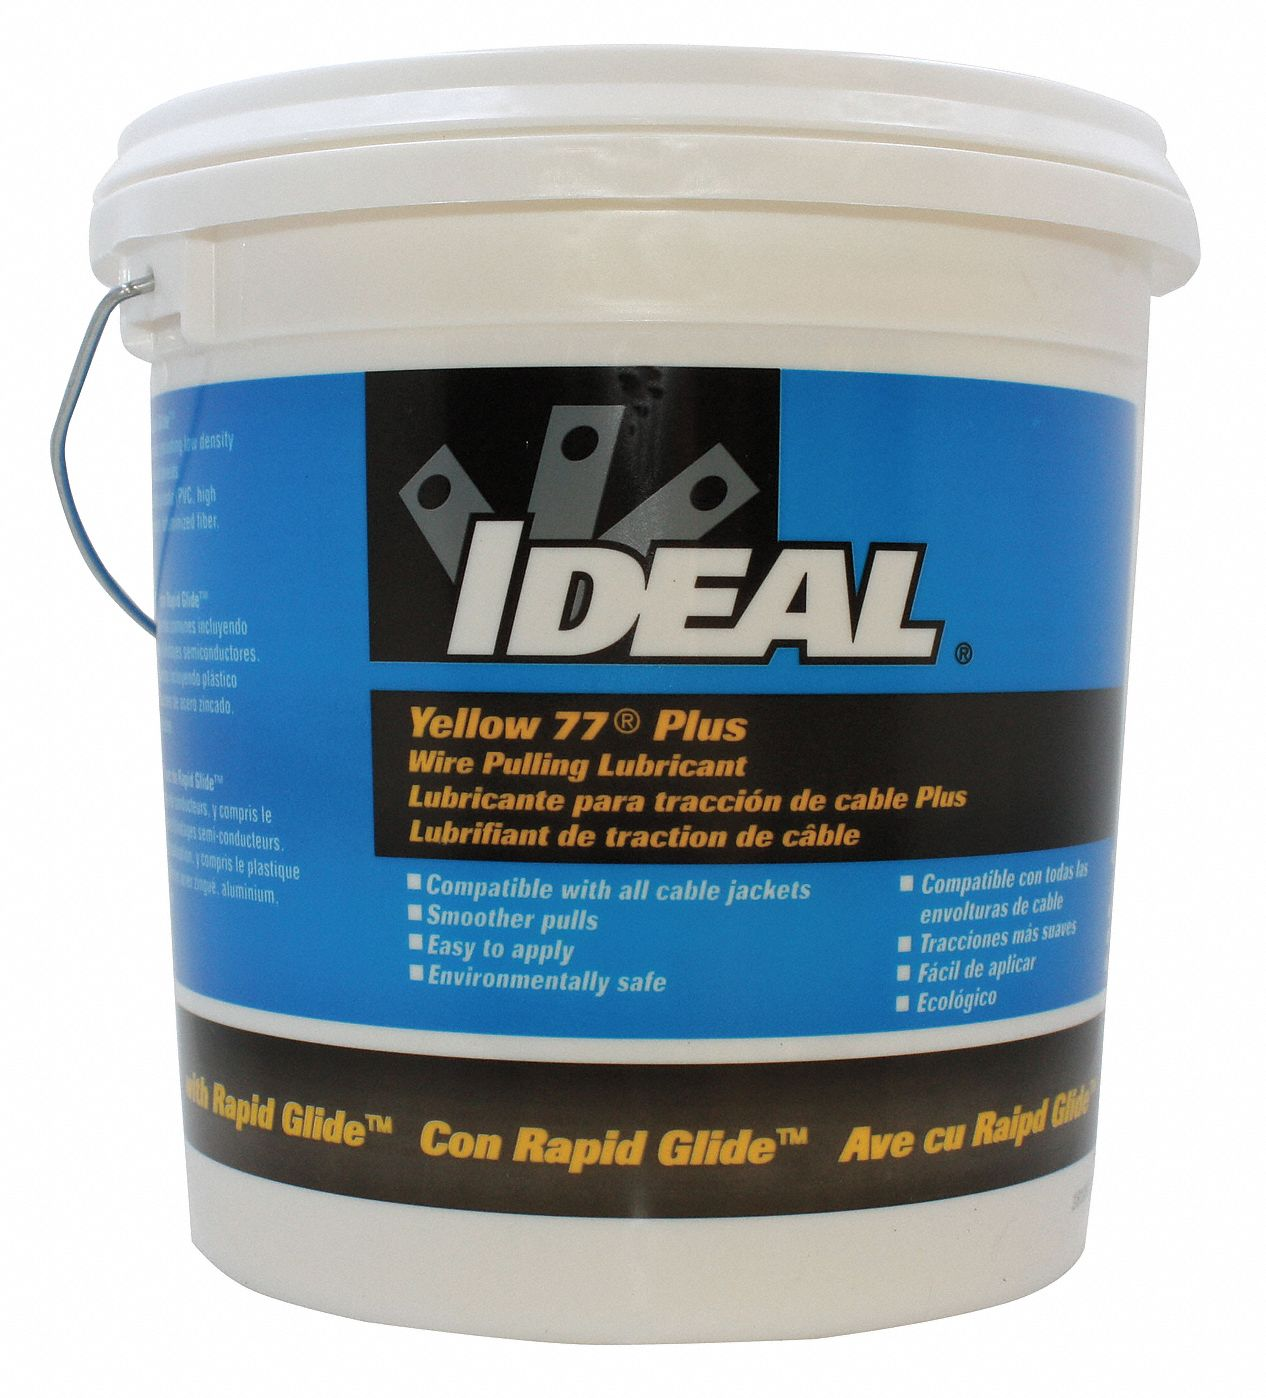 IDEAL Cable and Wire Pulling Lubricant, 1 gal. Pail, Water Chemical ...